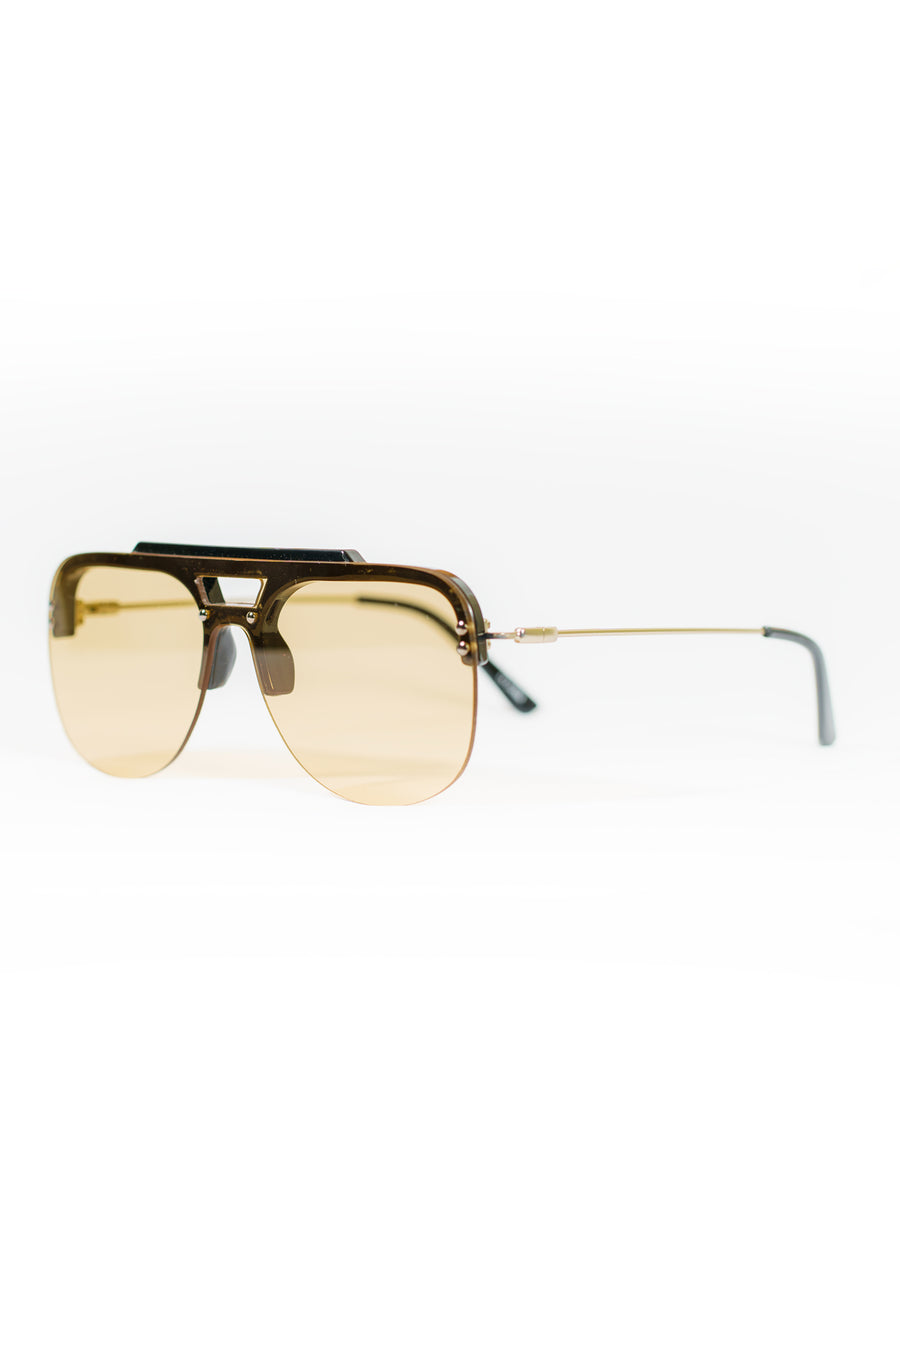 Spitfire Turbo Sunglasses - Black/Tan